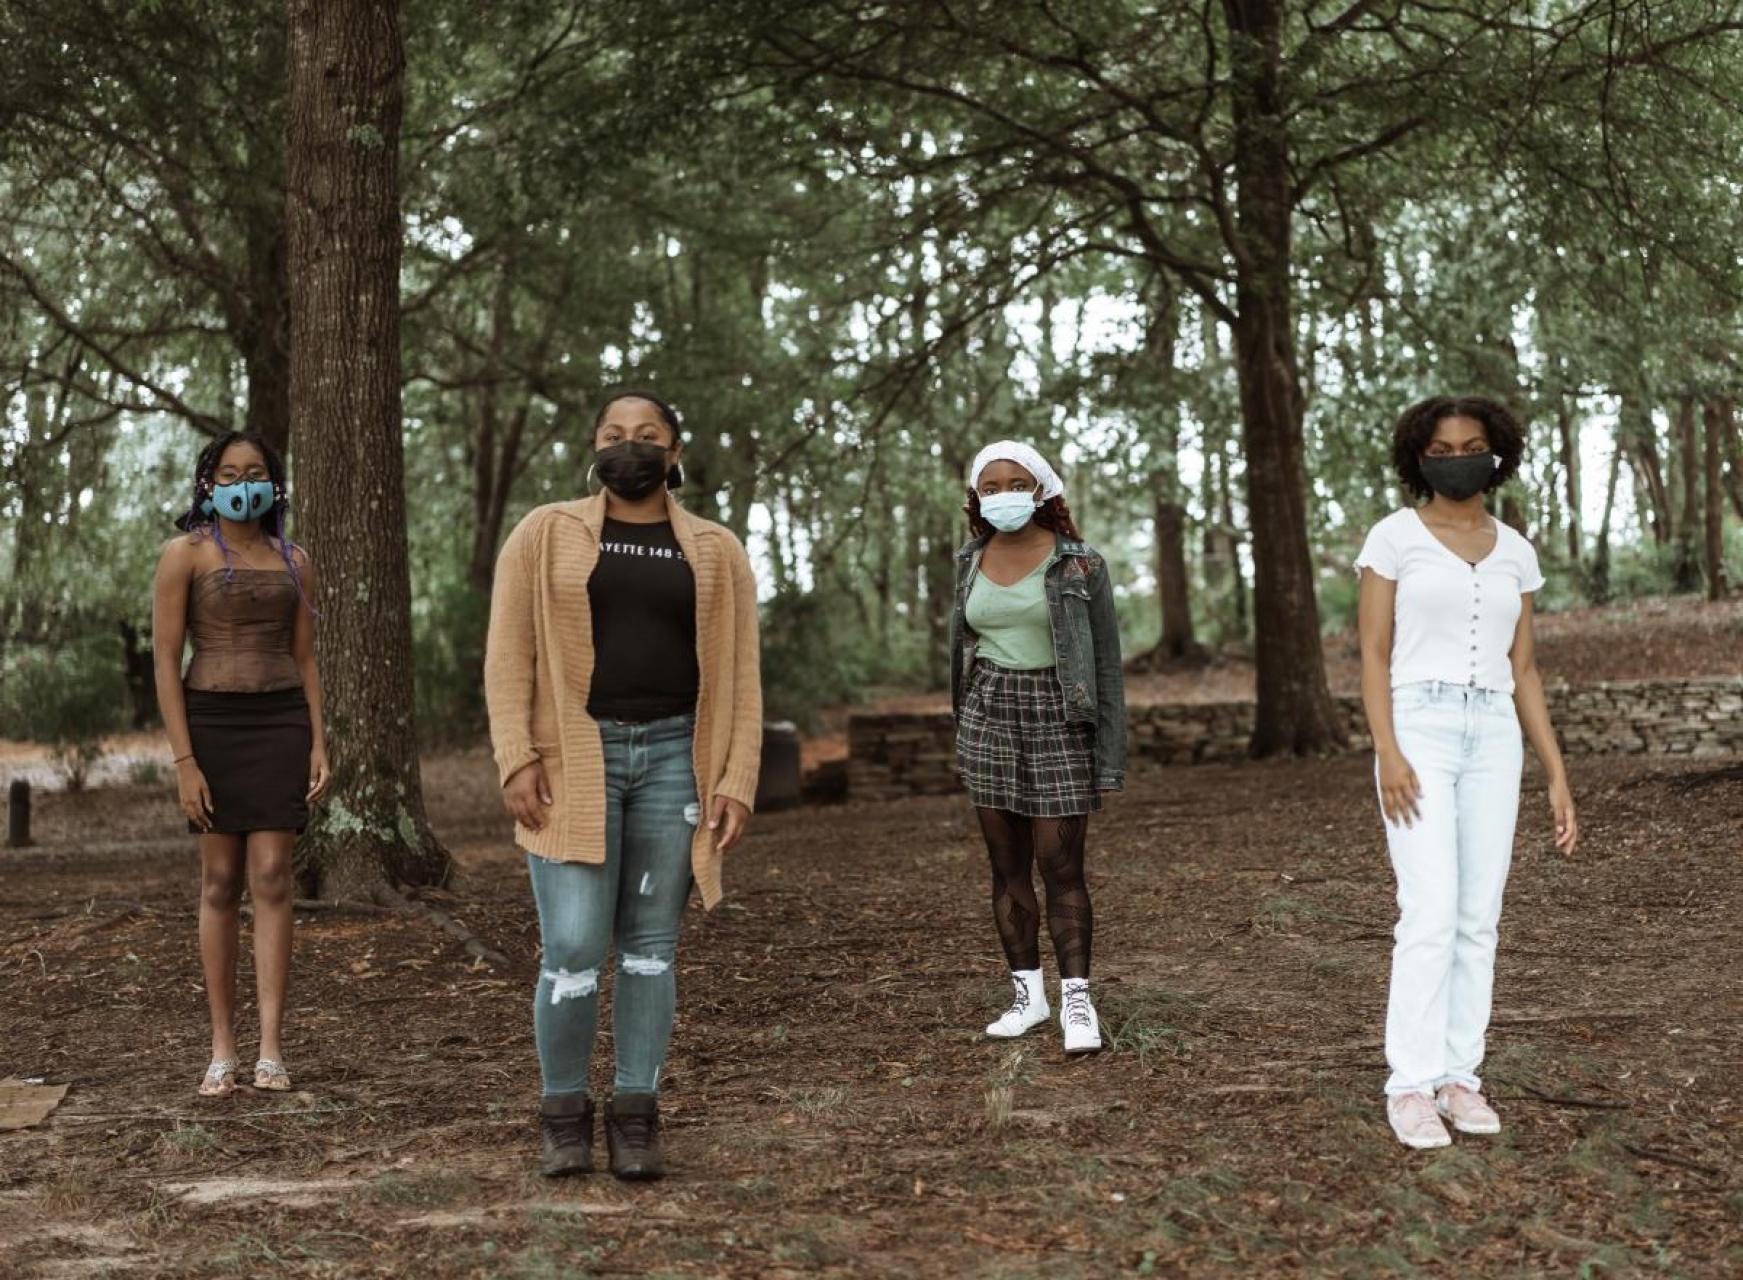 A group of 4 girls in the woods wearing facemasks